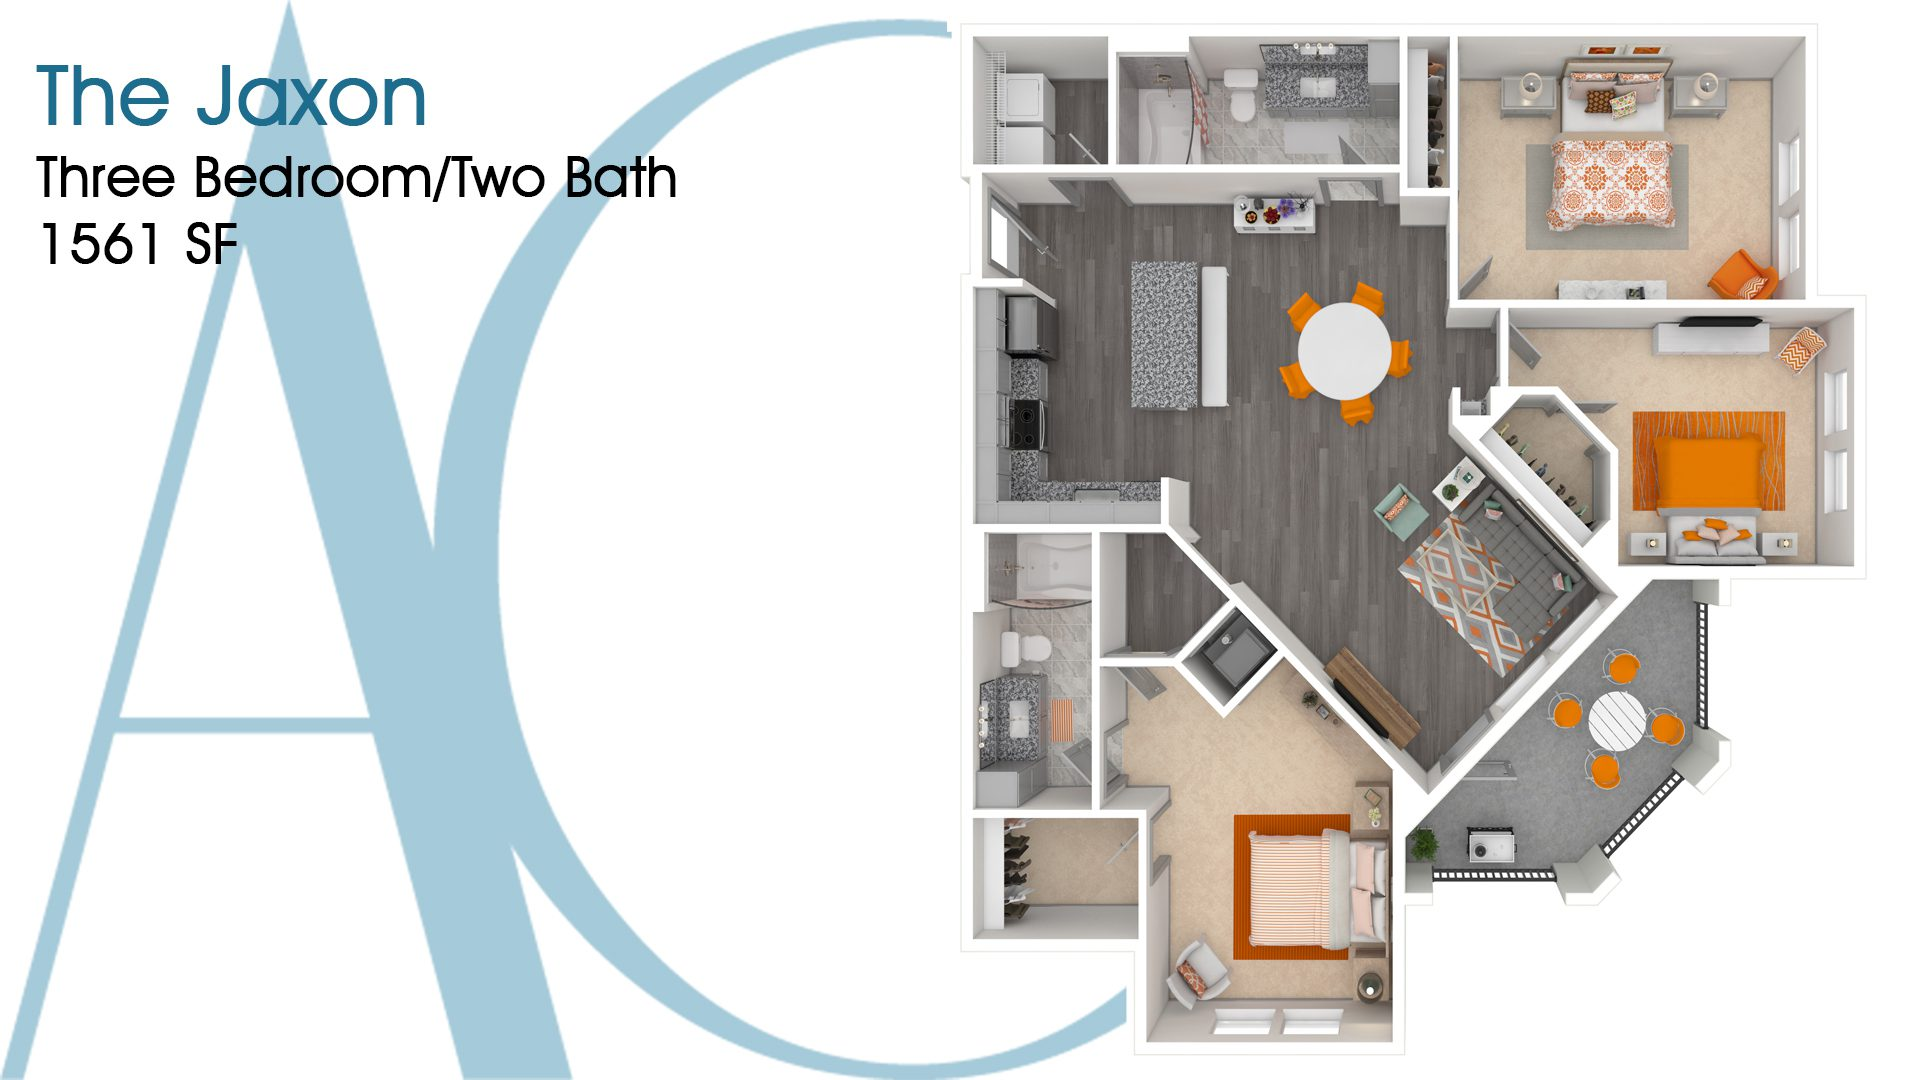 The Jaxon—Three-Bedroom/Two-Bath Apartment—1561 SQ. FT.